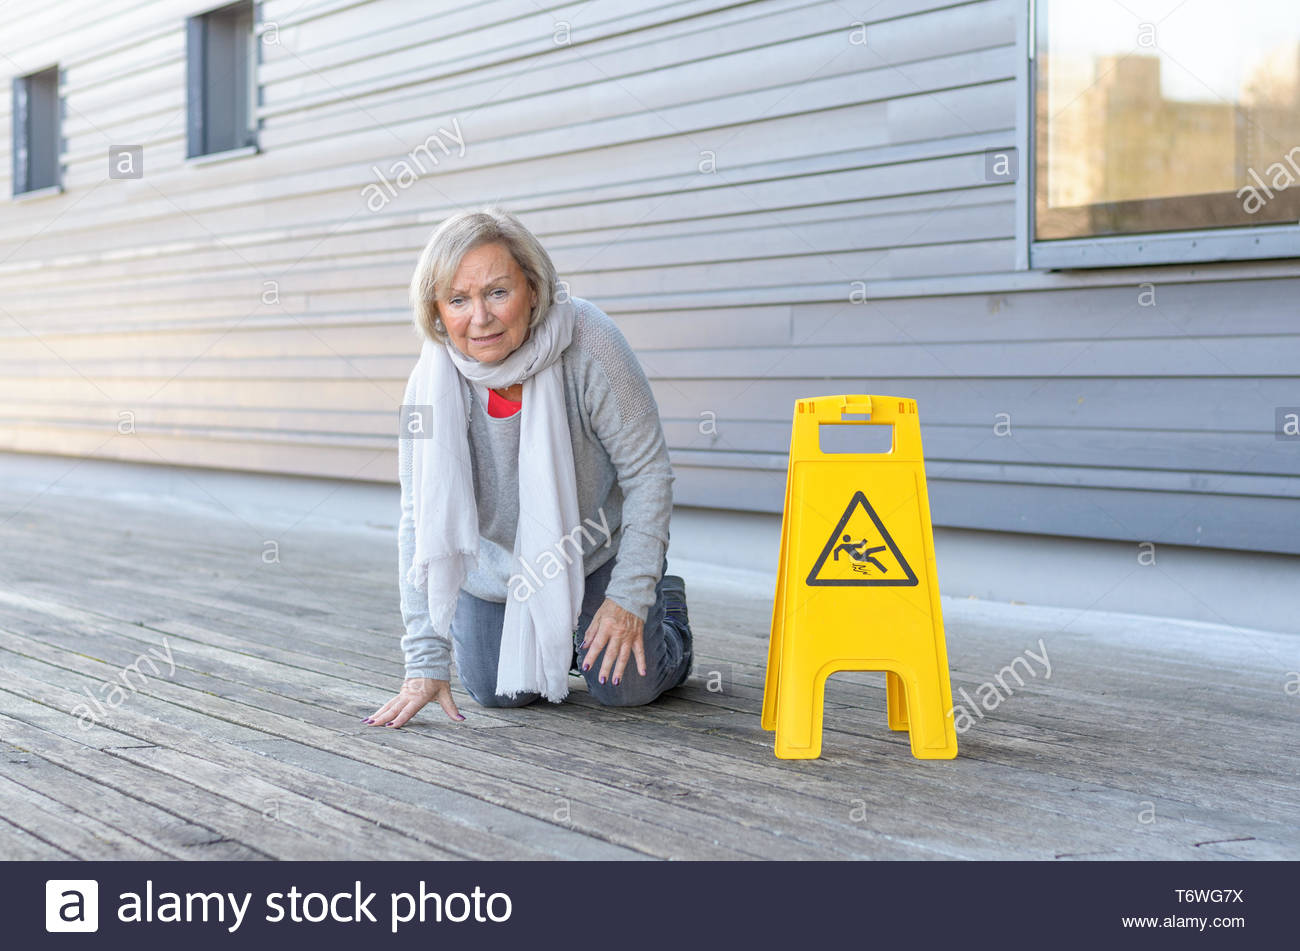 Elderly woman crawling on her knees after slipping - Stock Image